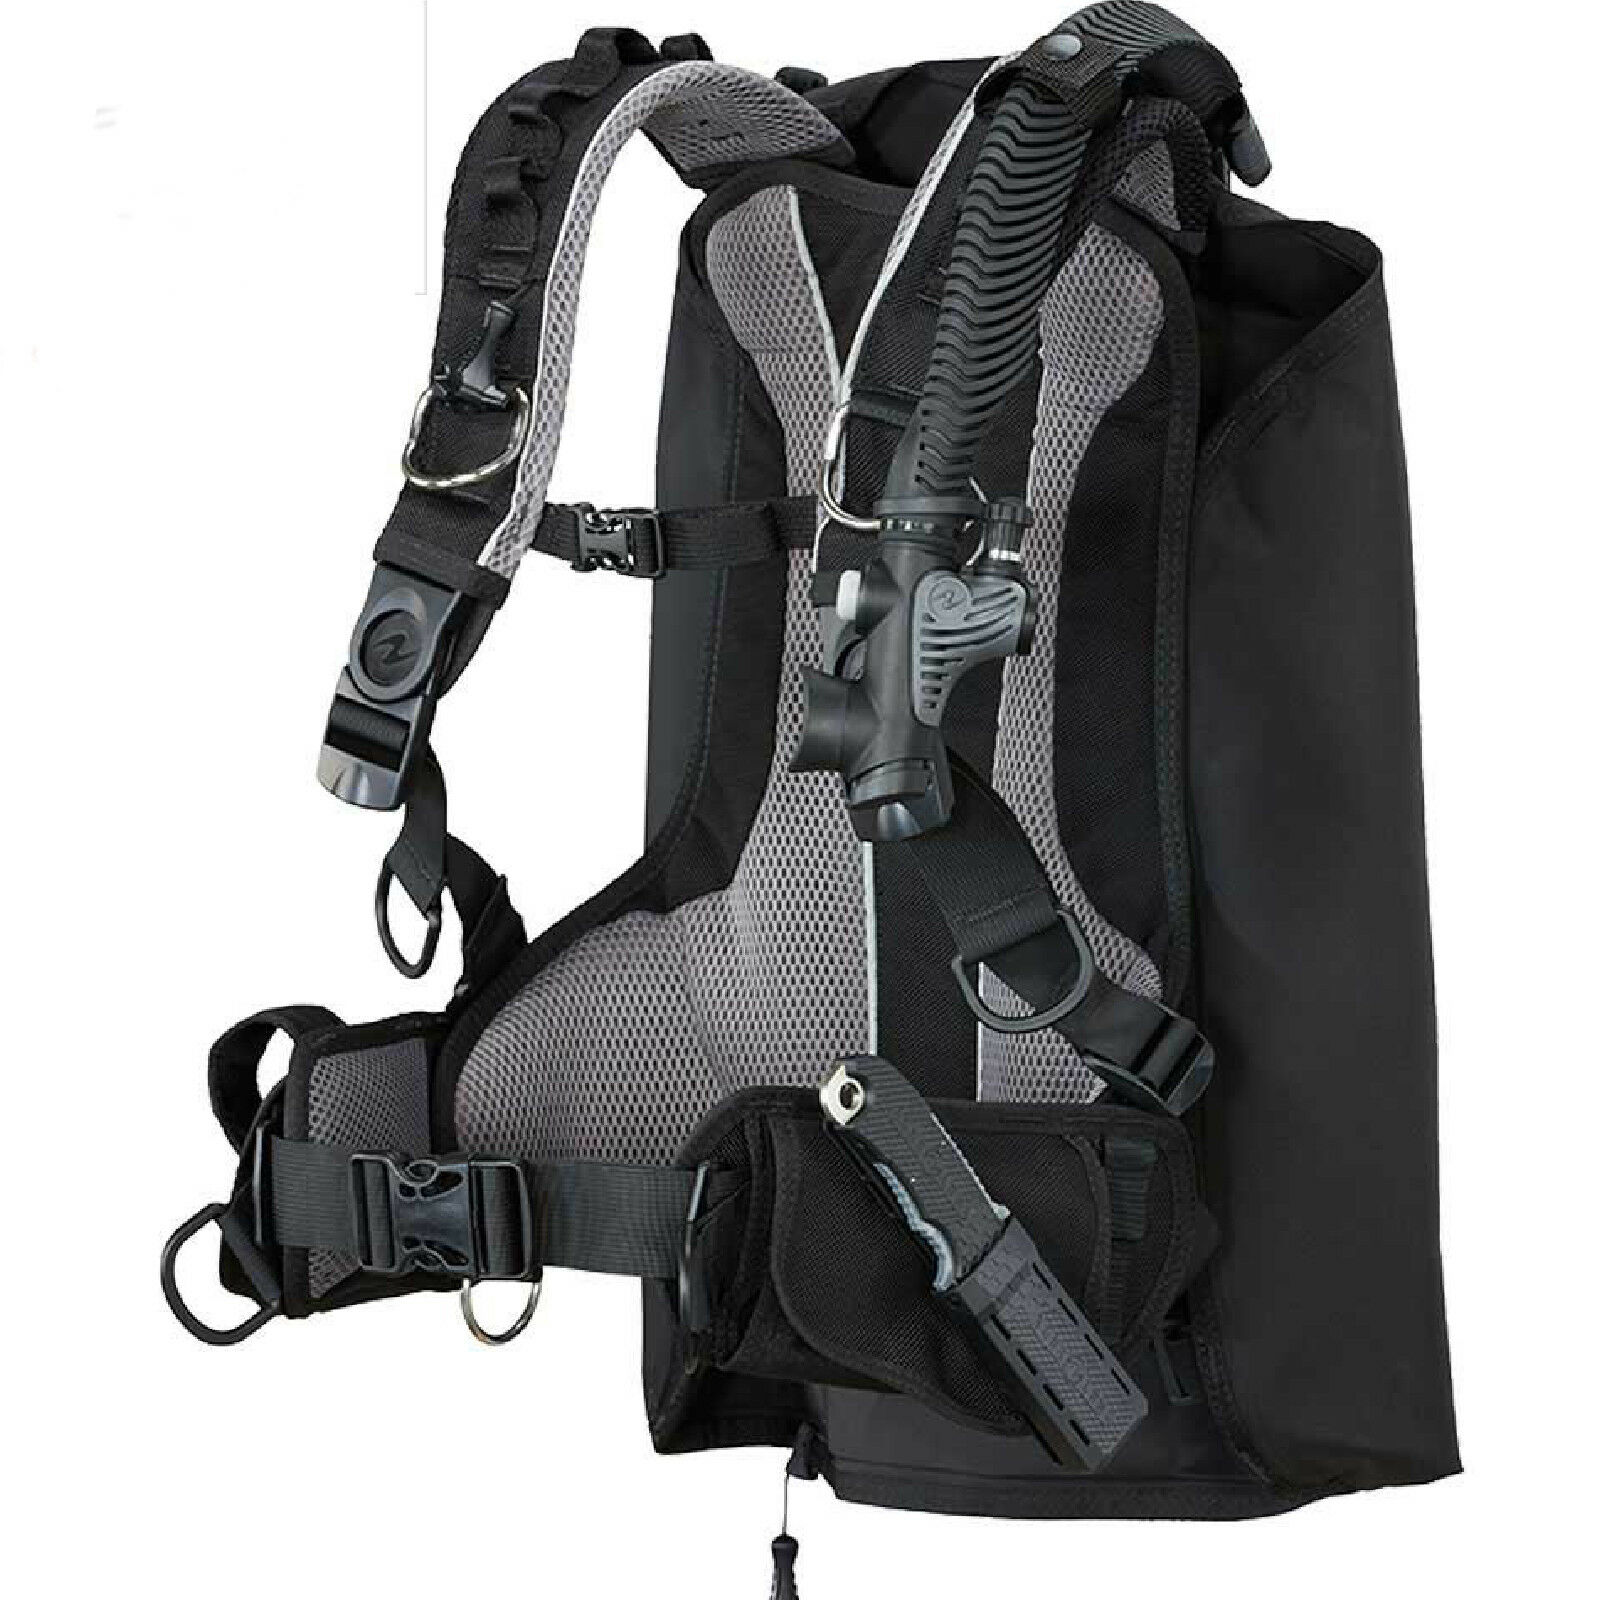 Lo3 super BCD dive immersion Aqualung ROGUE    3 sizes